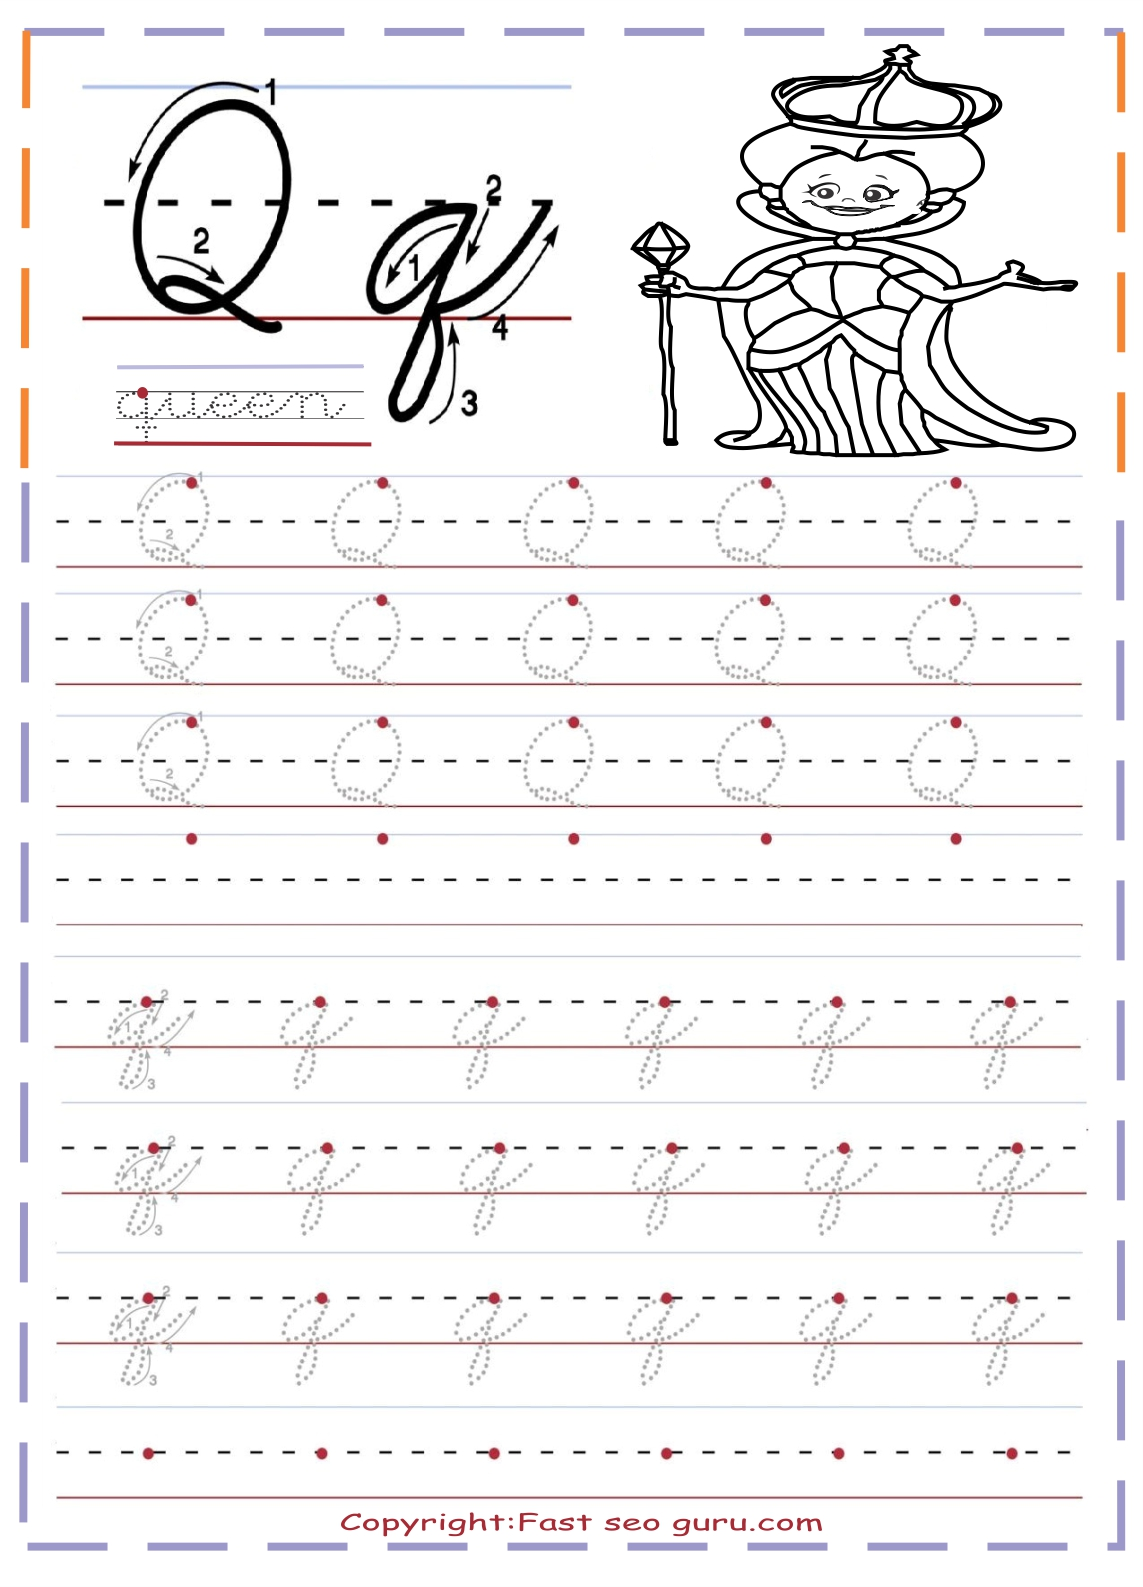 Lowercase Q Handwriting Worksheet